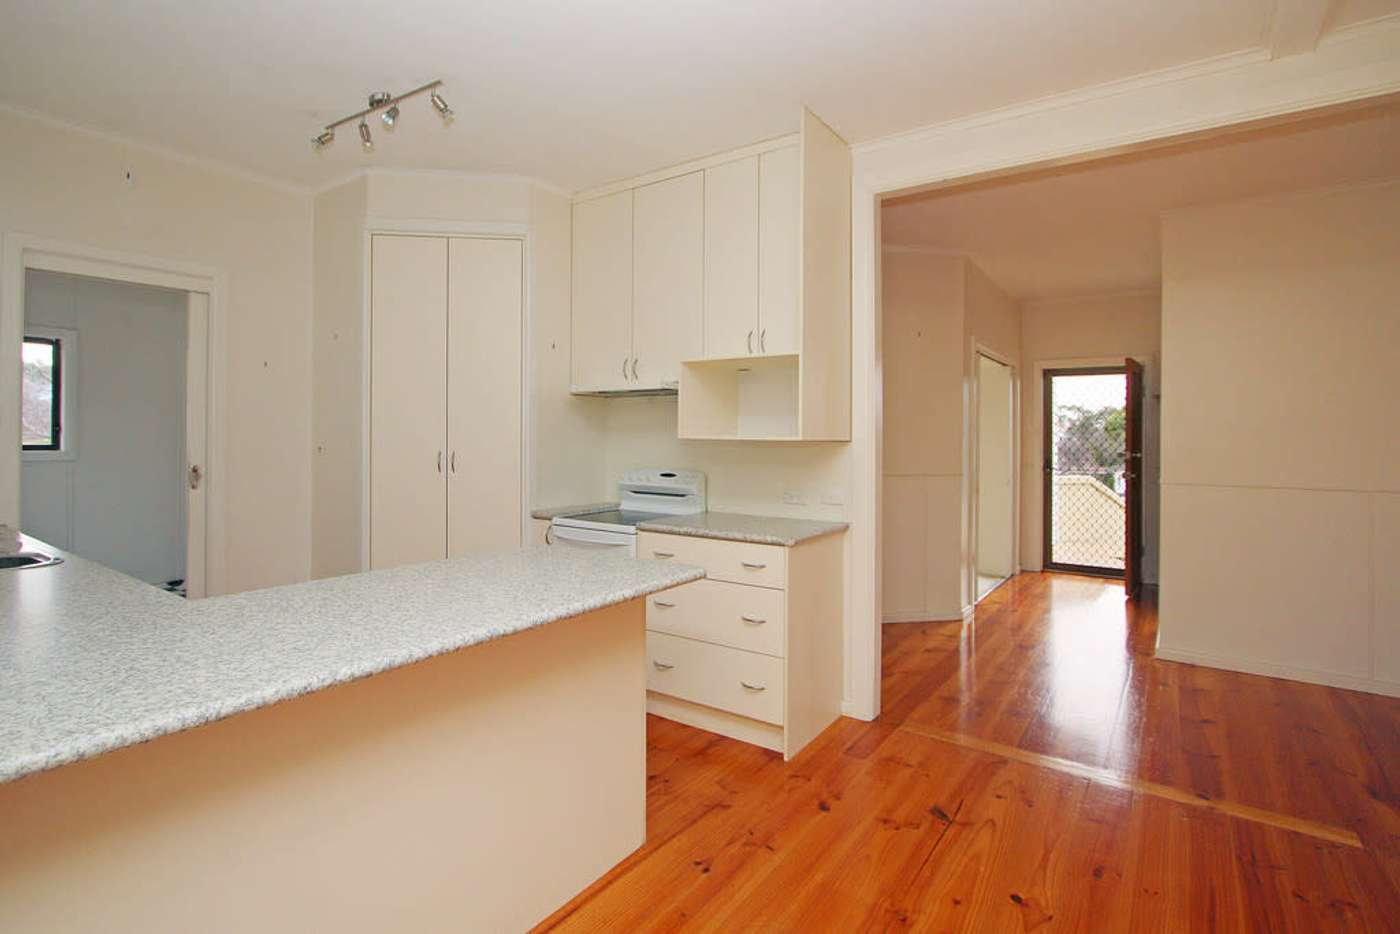 Sixth view of Homely house listing, 37 Culey Avenue, Cooma NSW 2630